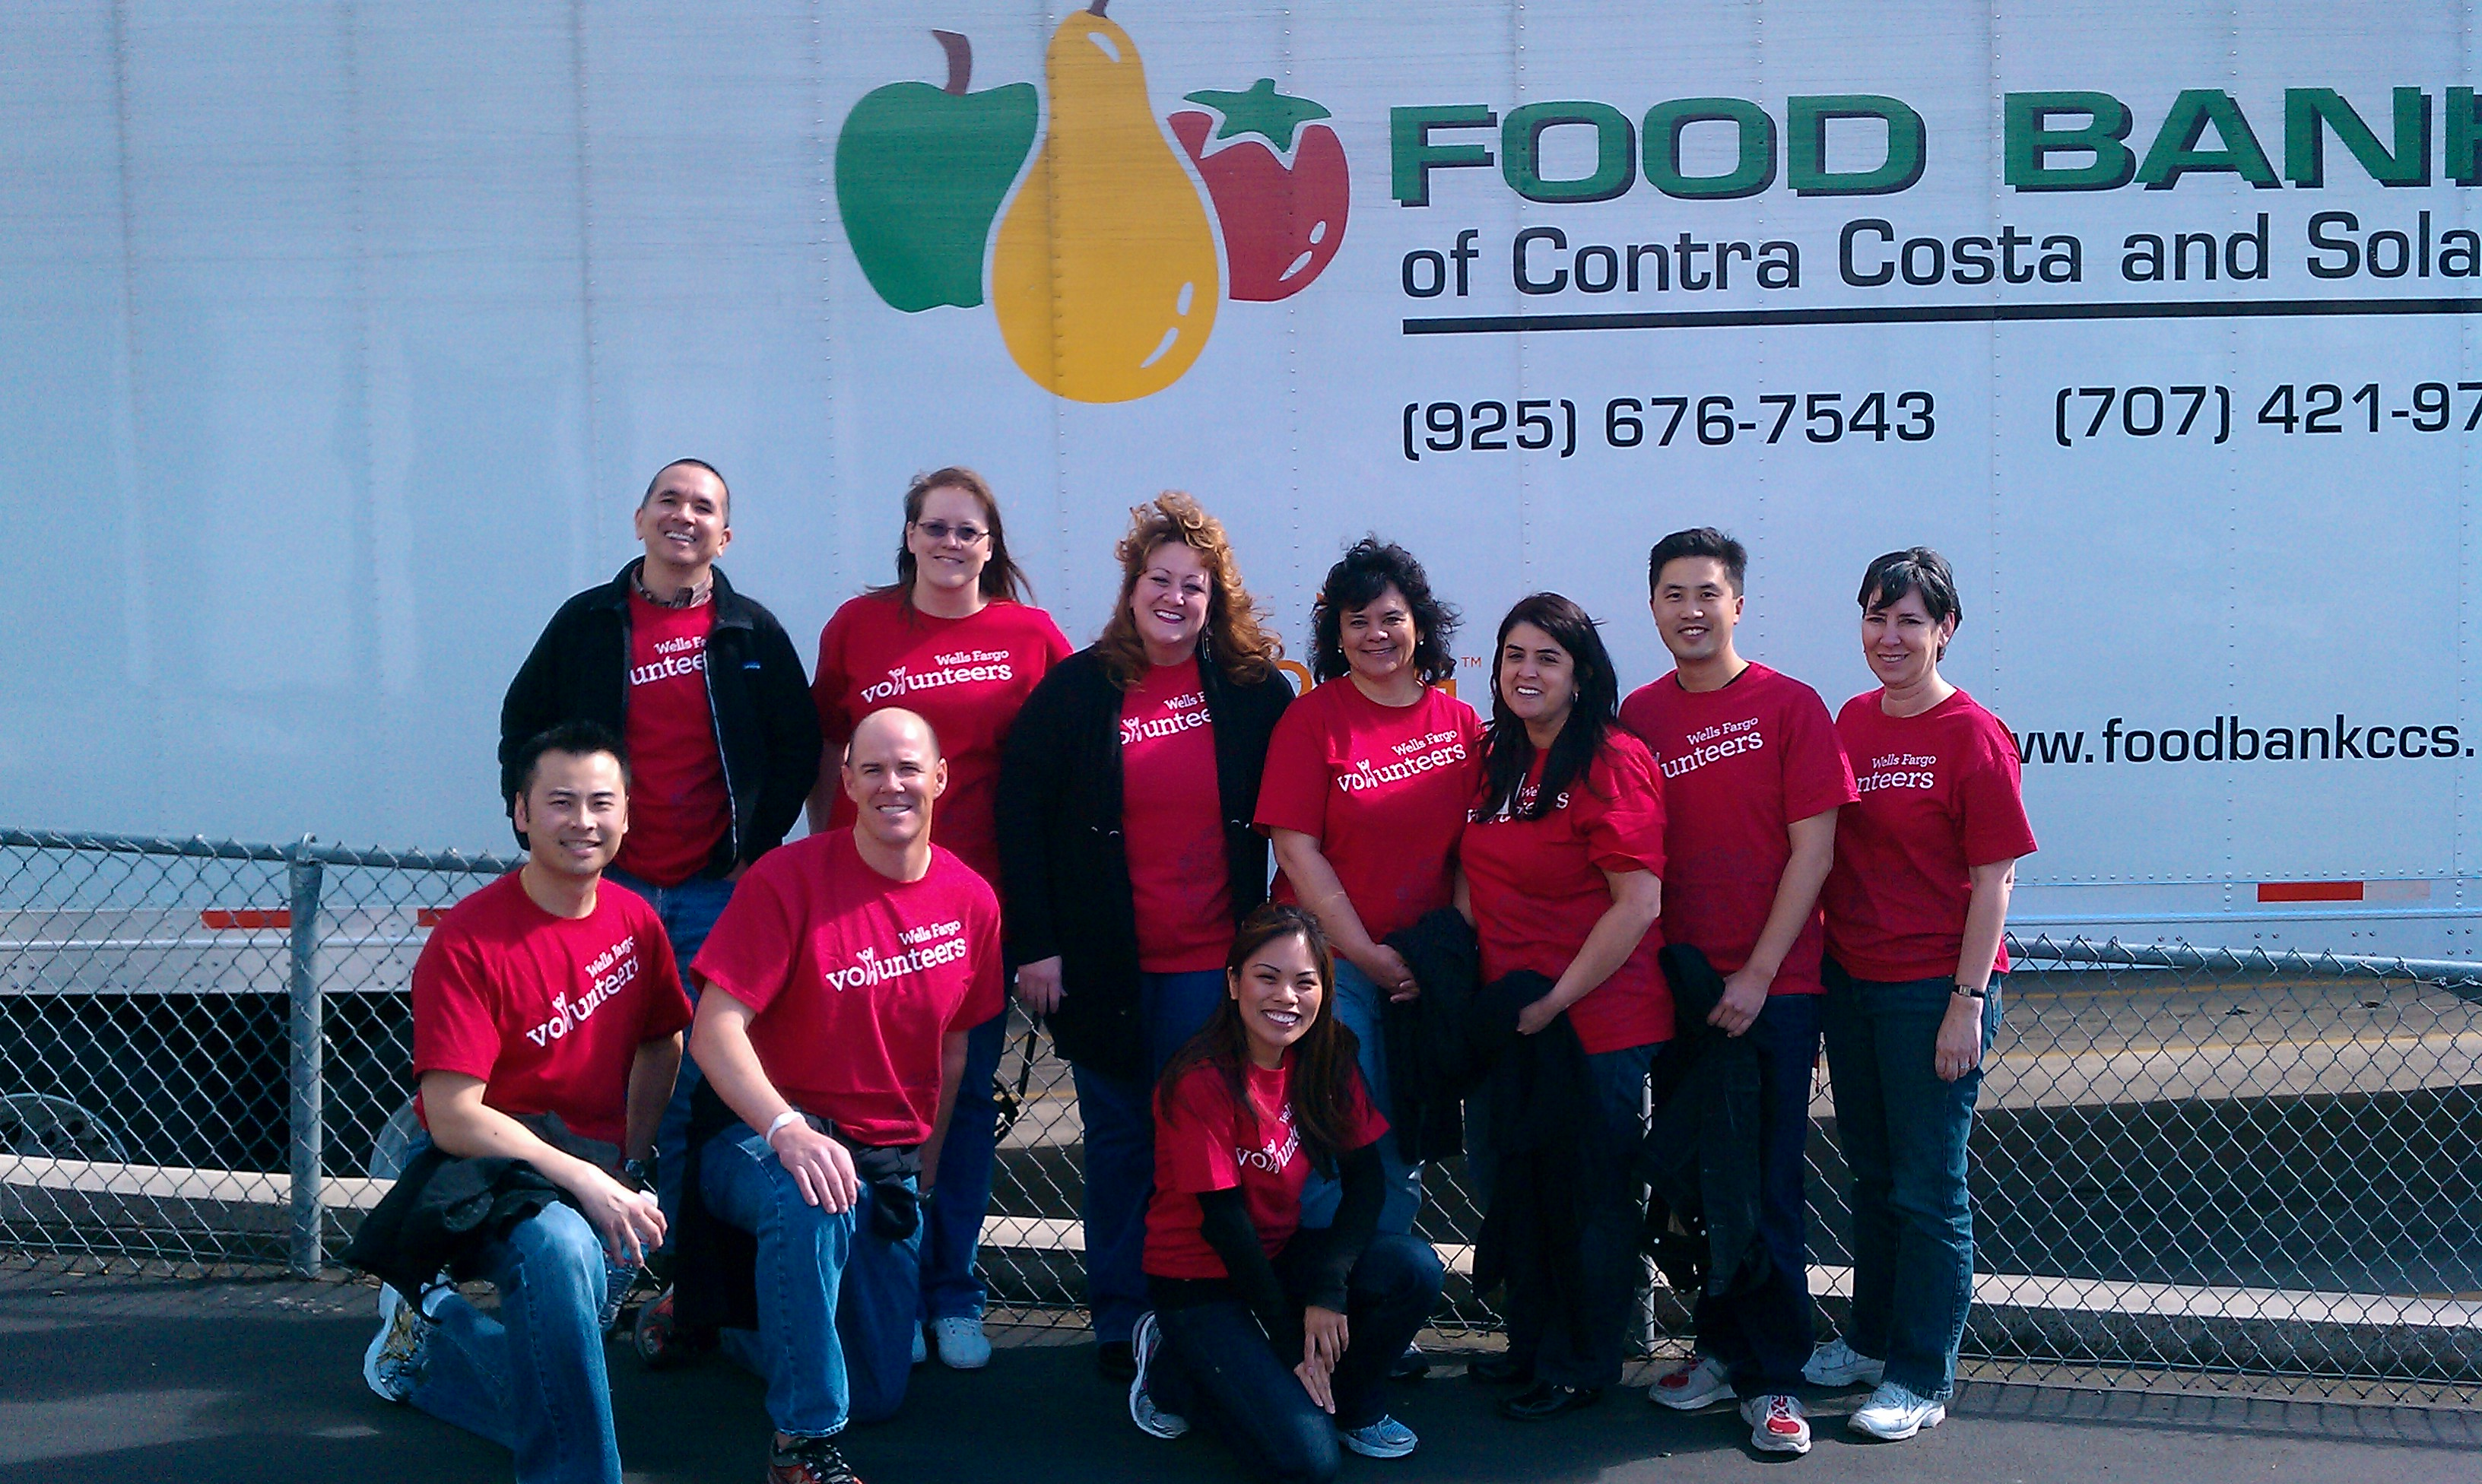 Wells Fargo Volunteers Food Bank of Contra Costa and Solano